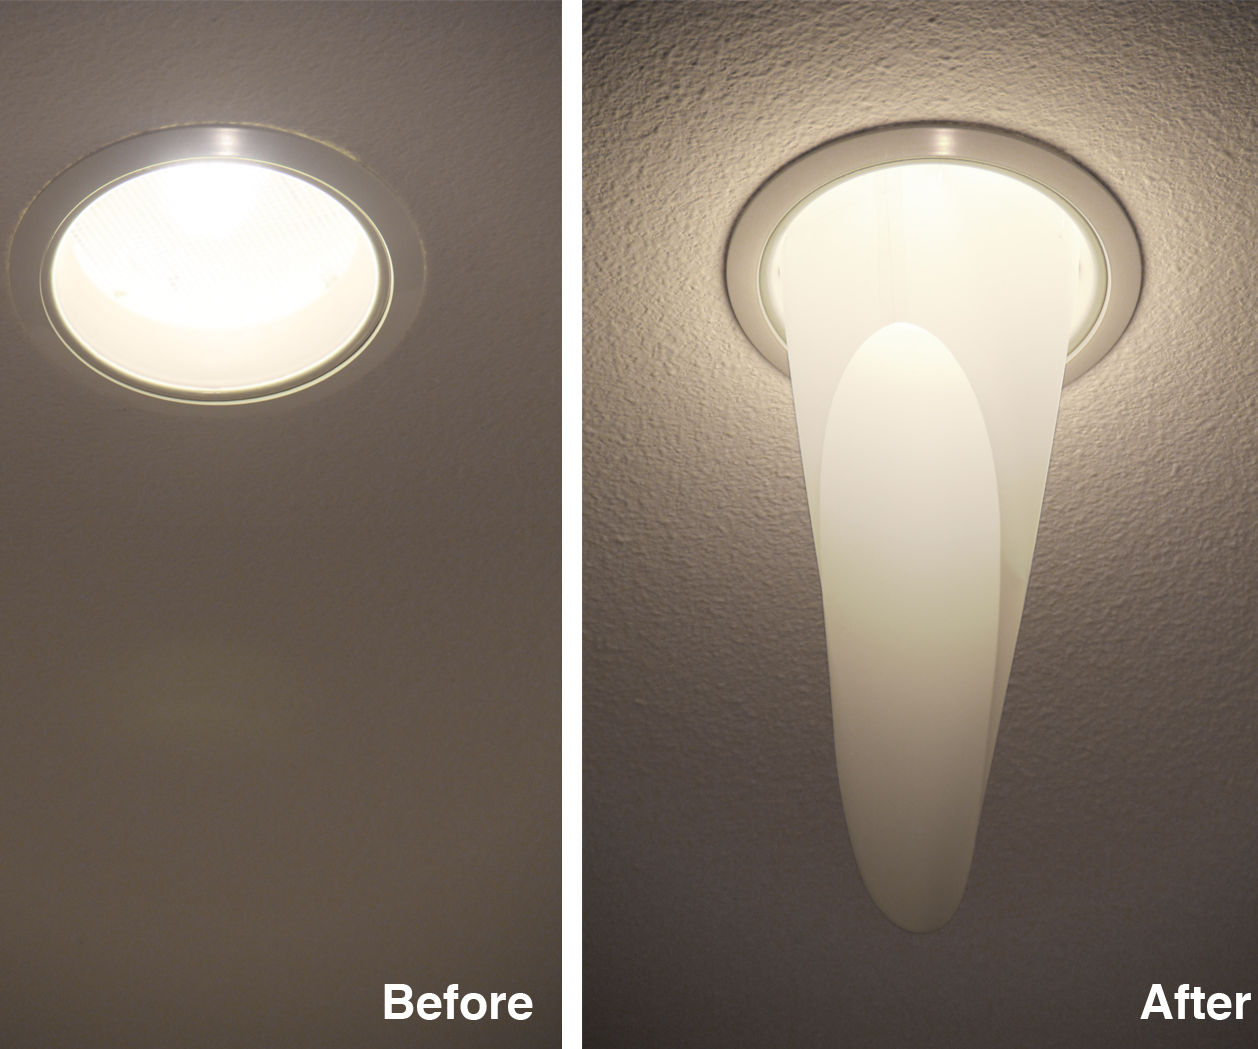 Mylar Light Diffuser For Recessed Ceiling Lights 12 Steps With Pictures Instructables